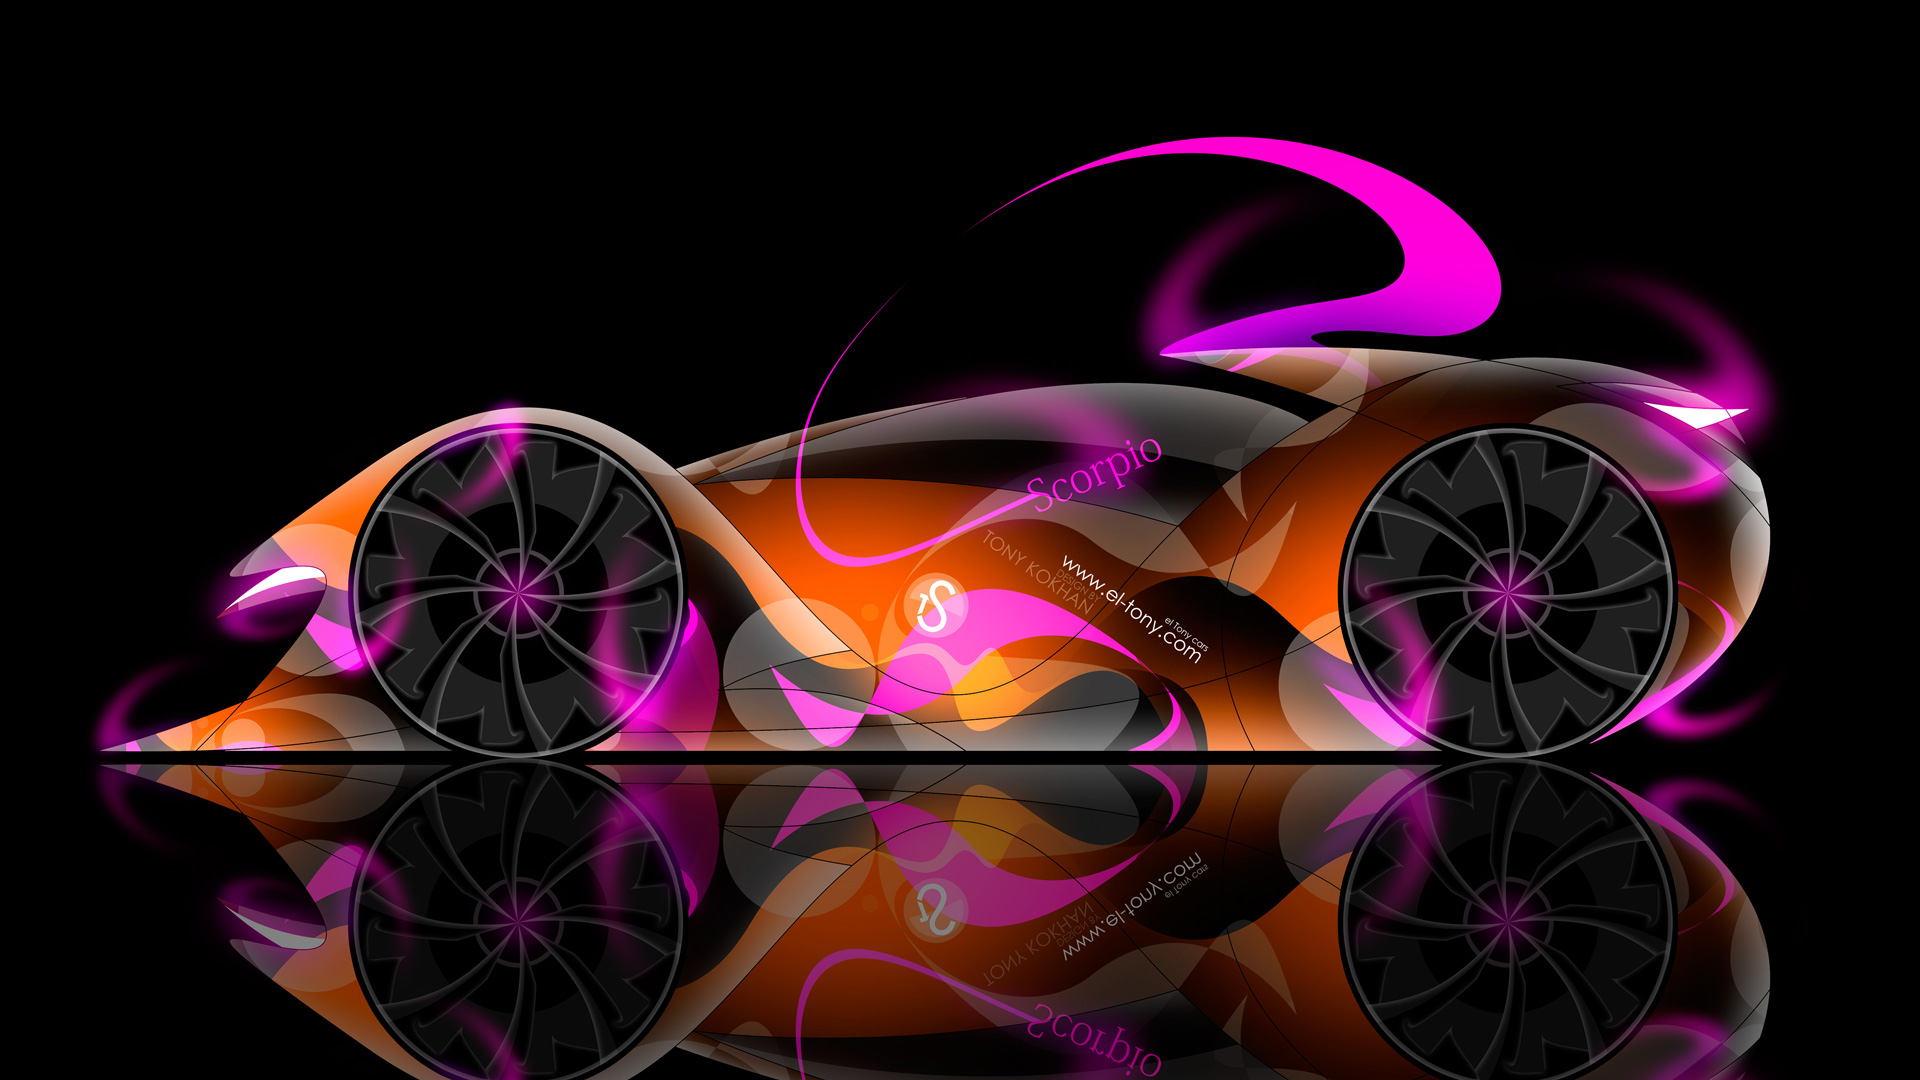 Attrayant BMW M4 Front Super Abstract Aerography Car 2014 · TS Scorpio Neon Car 2014